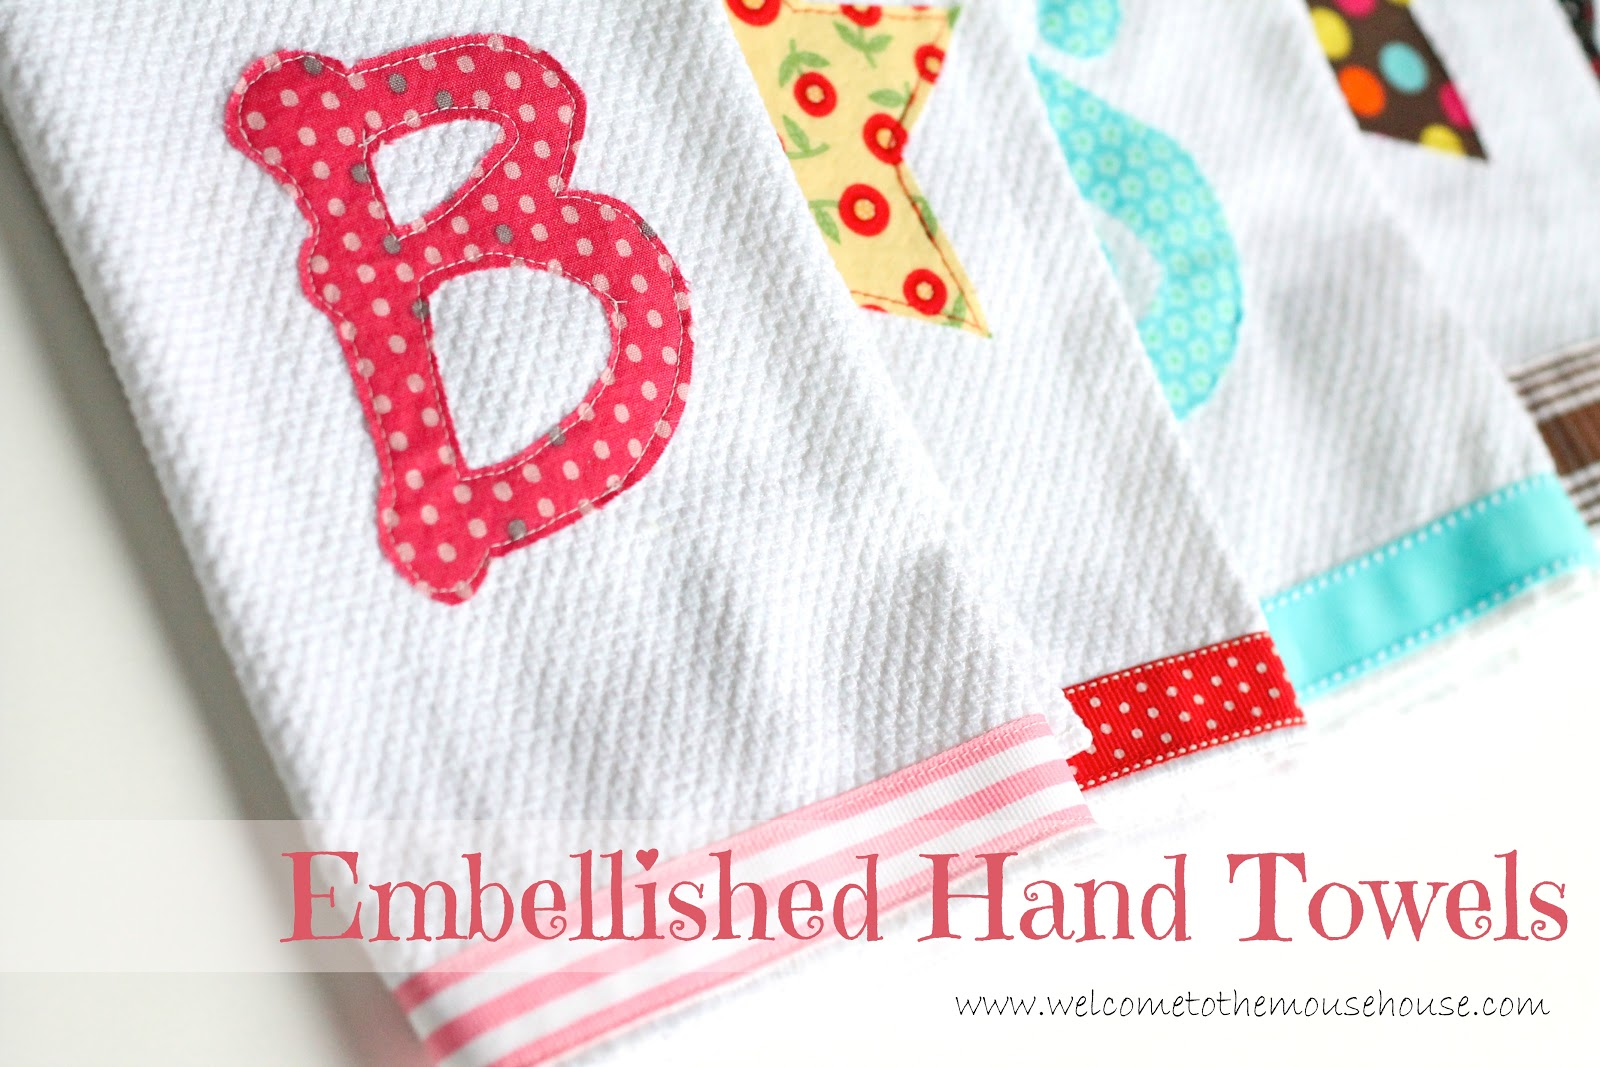 How To Embellish Hand Towels: Diy How To Embellish Hand Towels: Diy  Welcometothemousehouse Embroidery